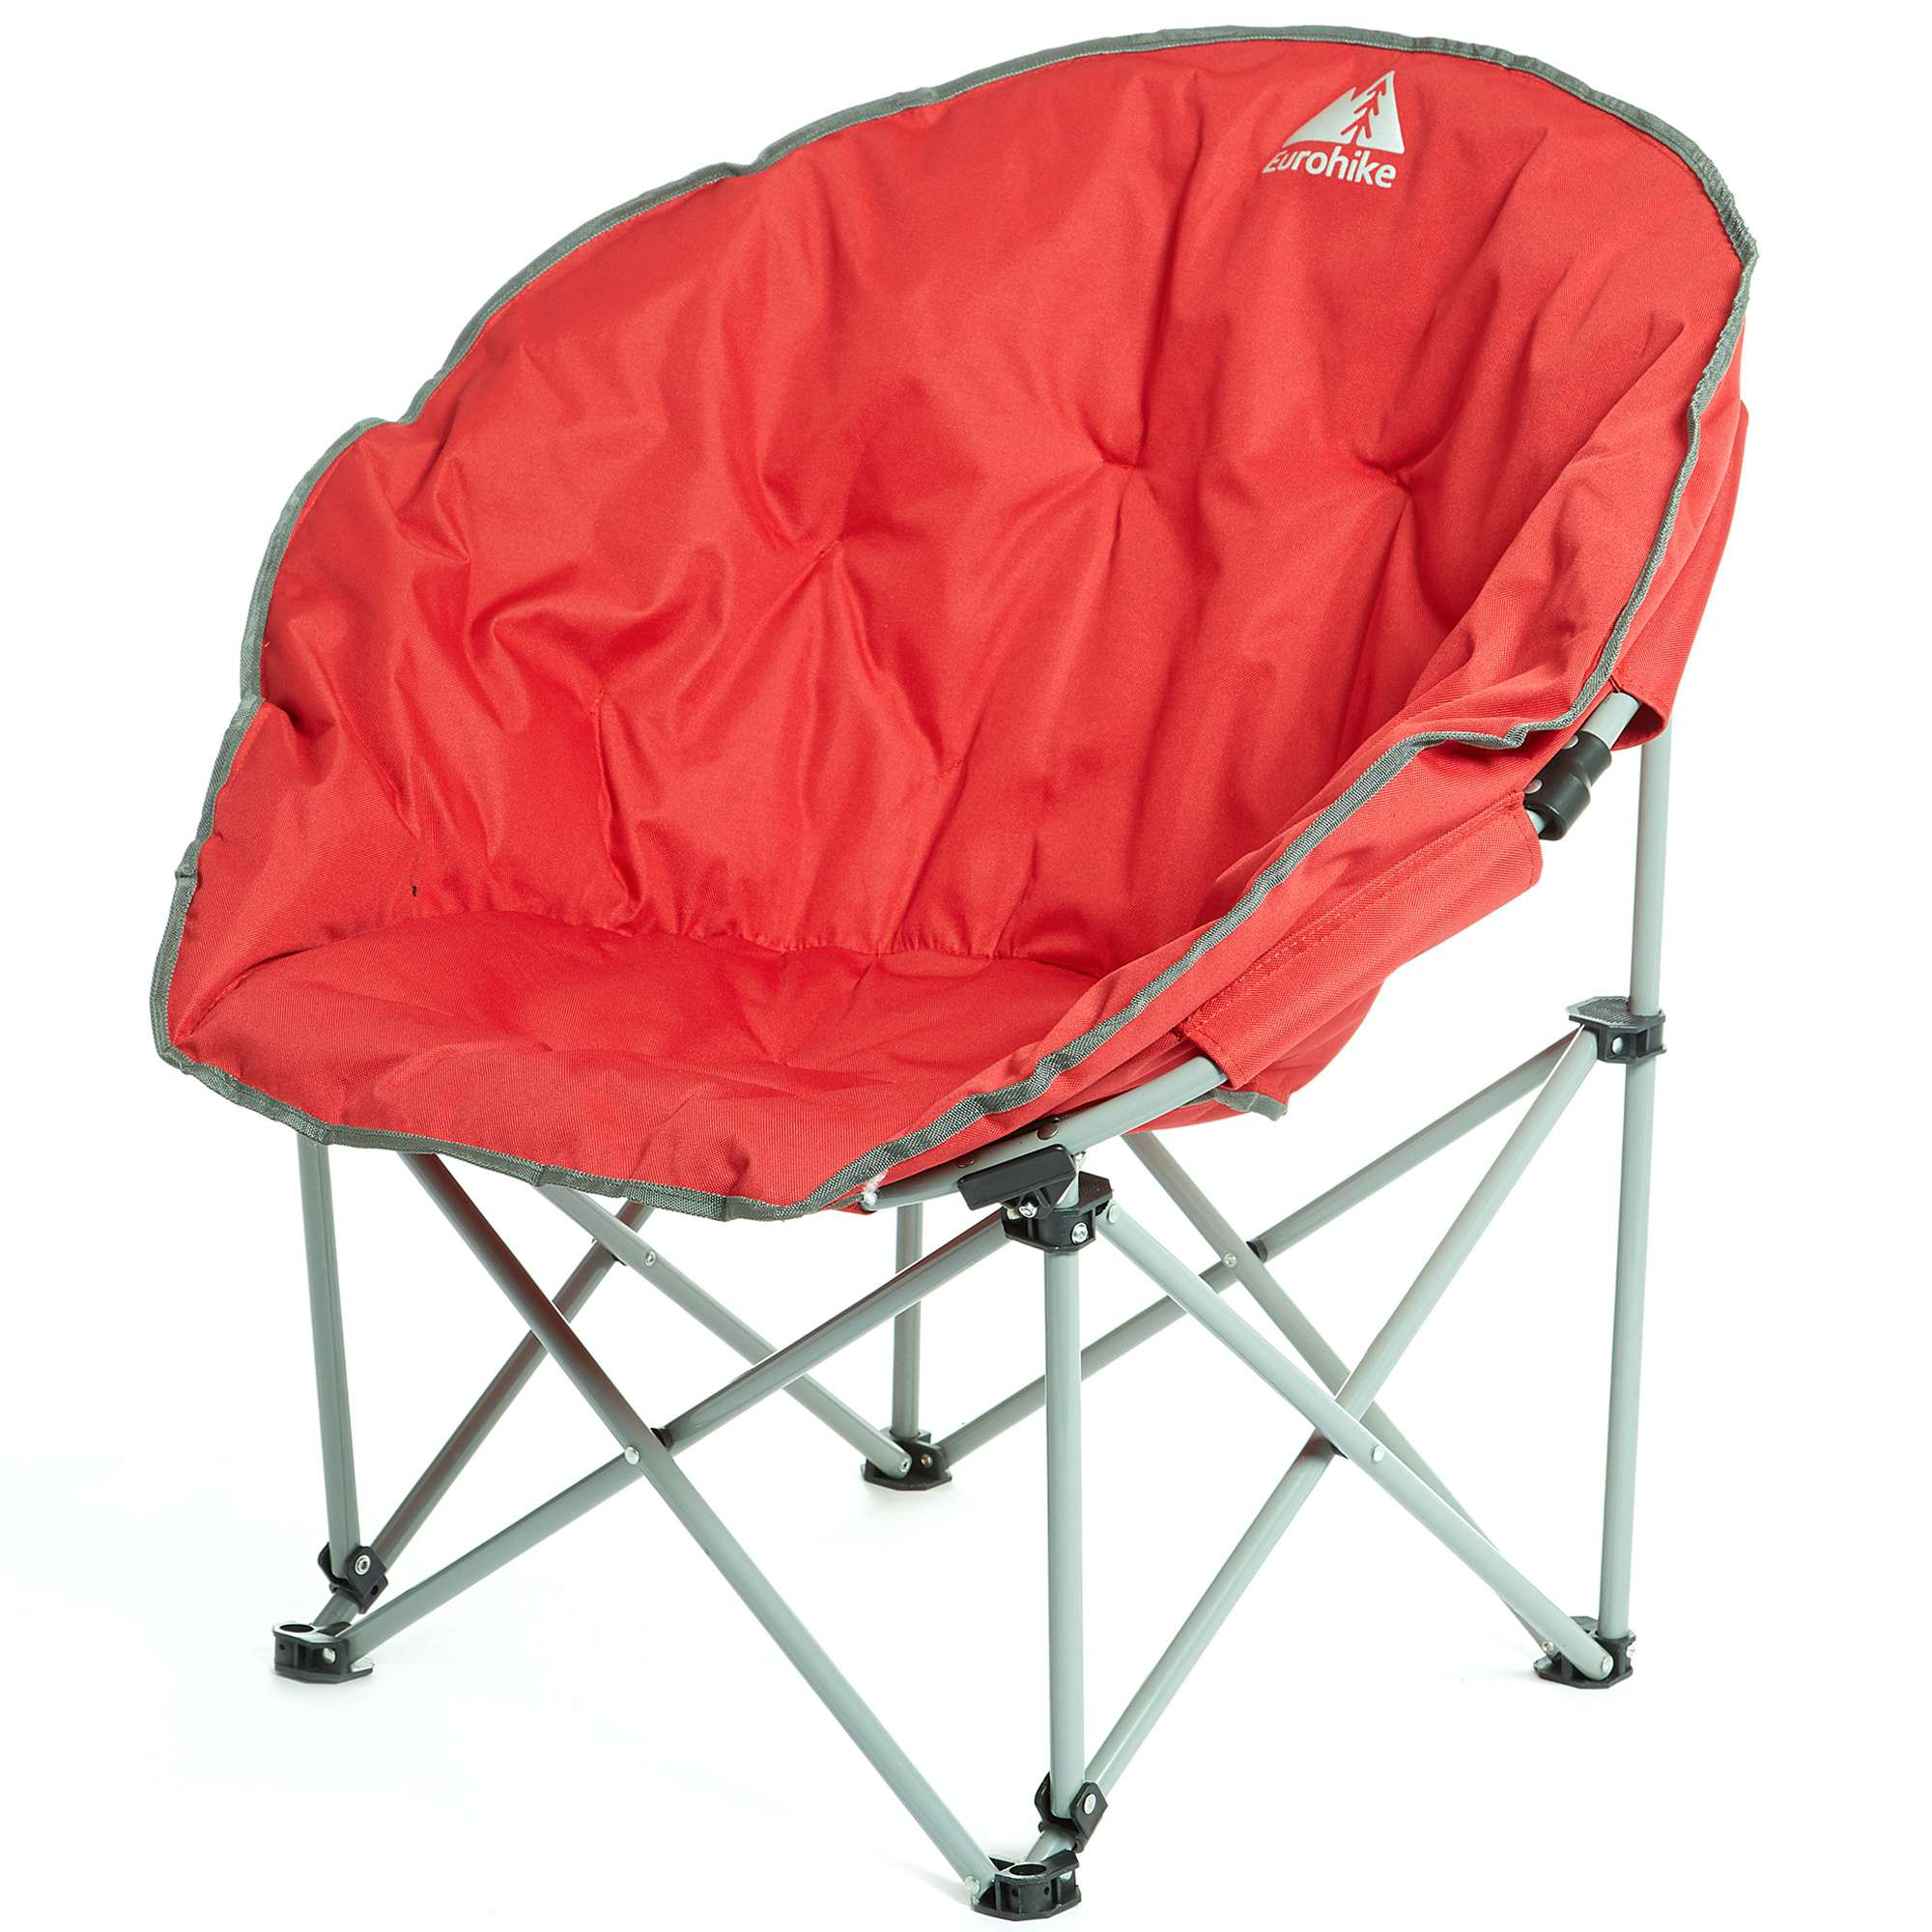 EUROHIKE Deluxe Moon Chair